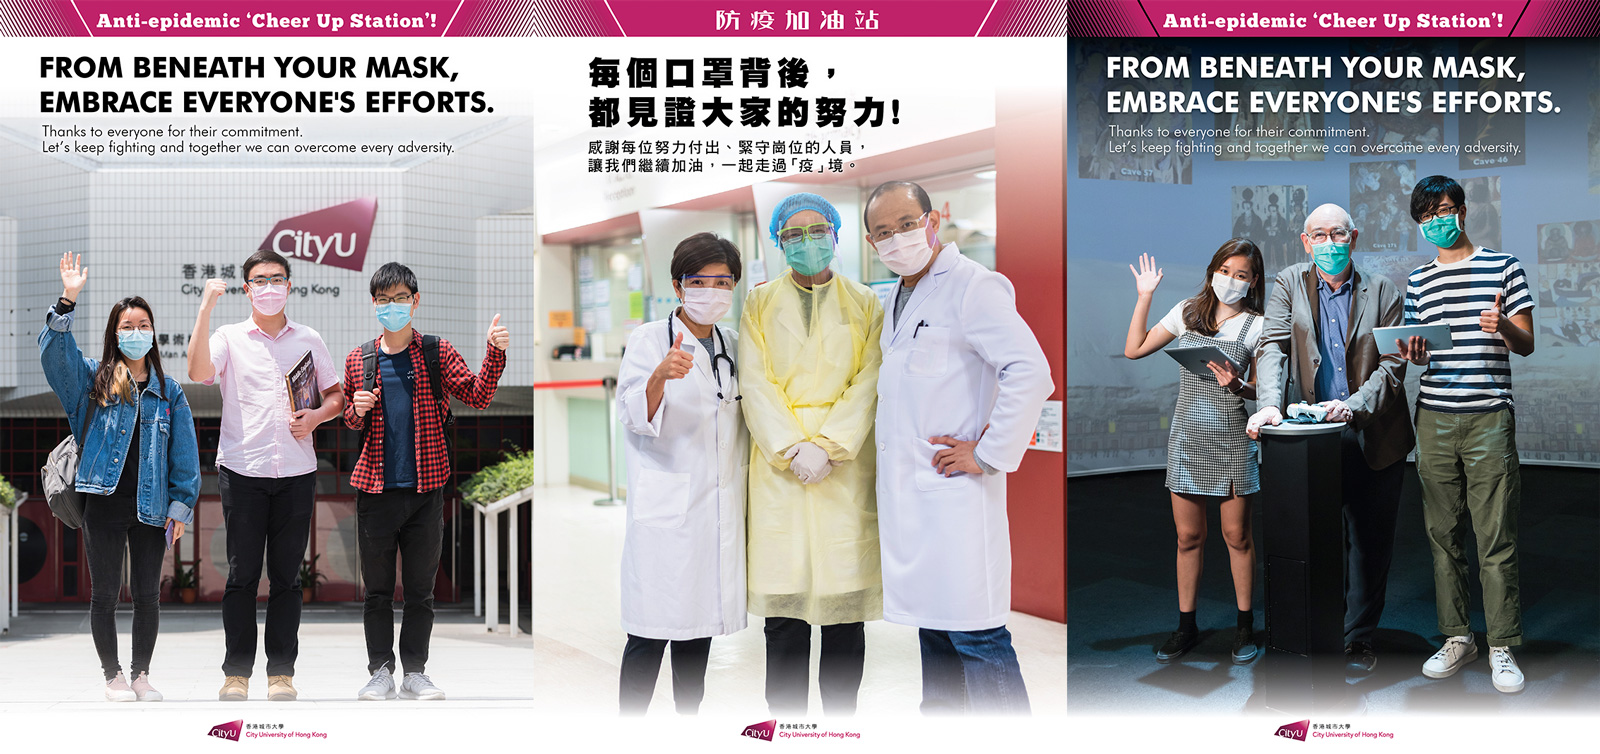 The new posters show the positive side of CityU's teachers, students and staff members.